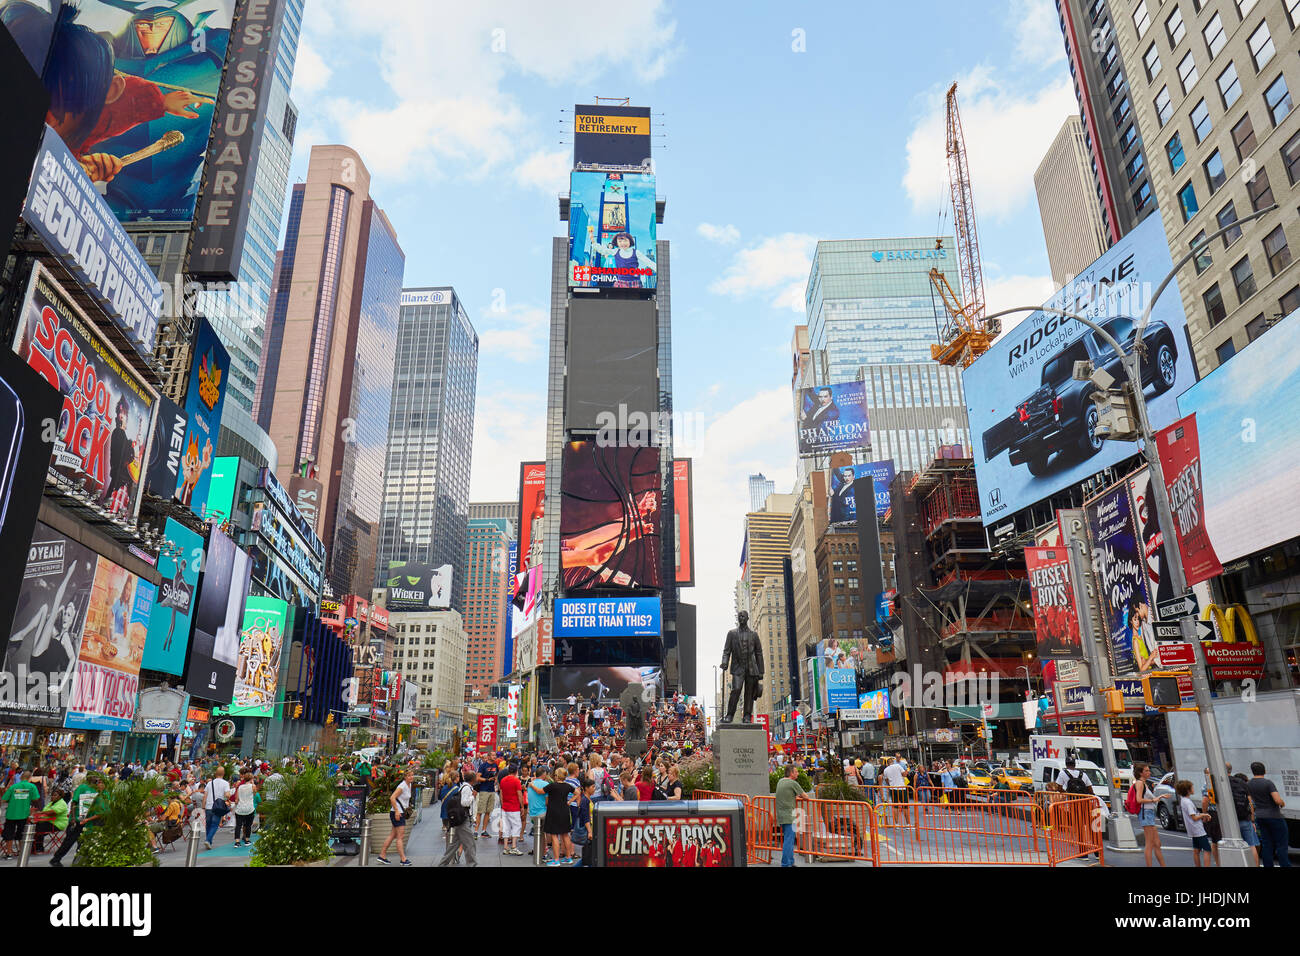 Times Square view with people and advertising billboards in New York - Stock Image